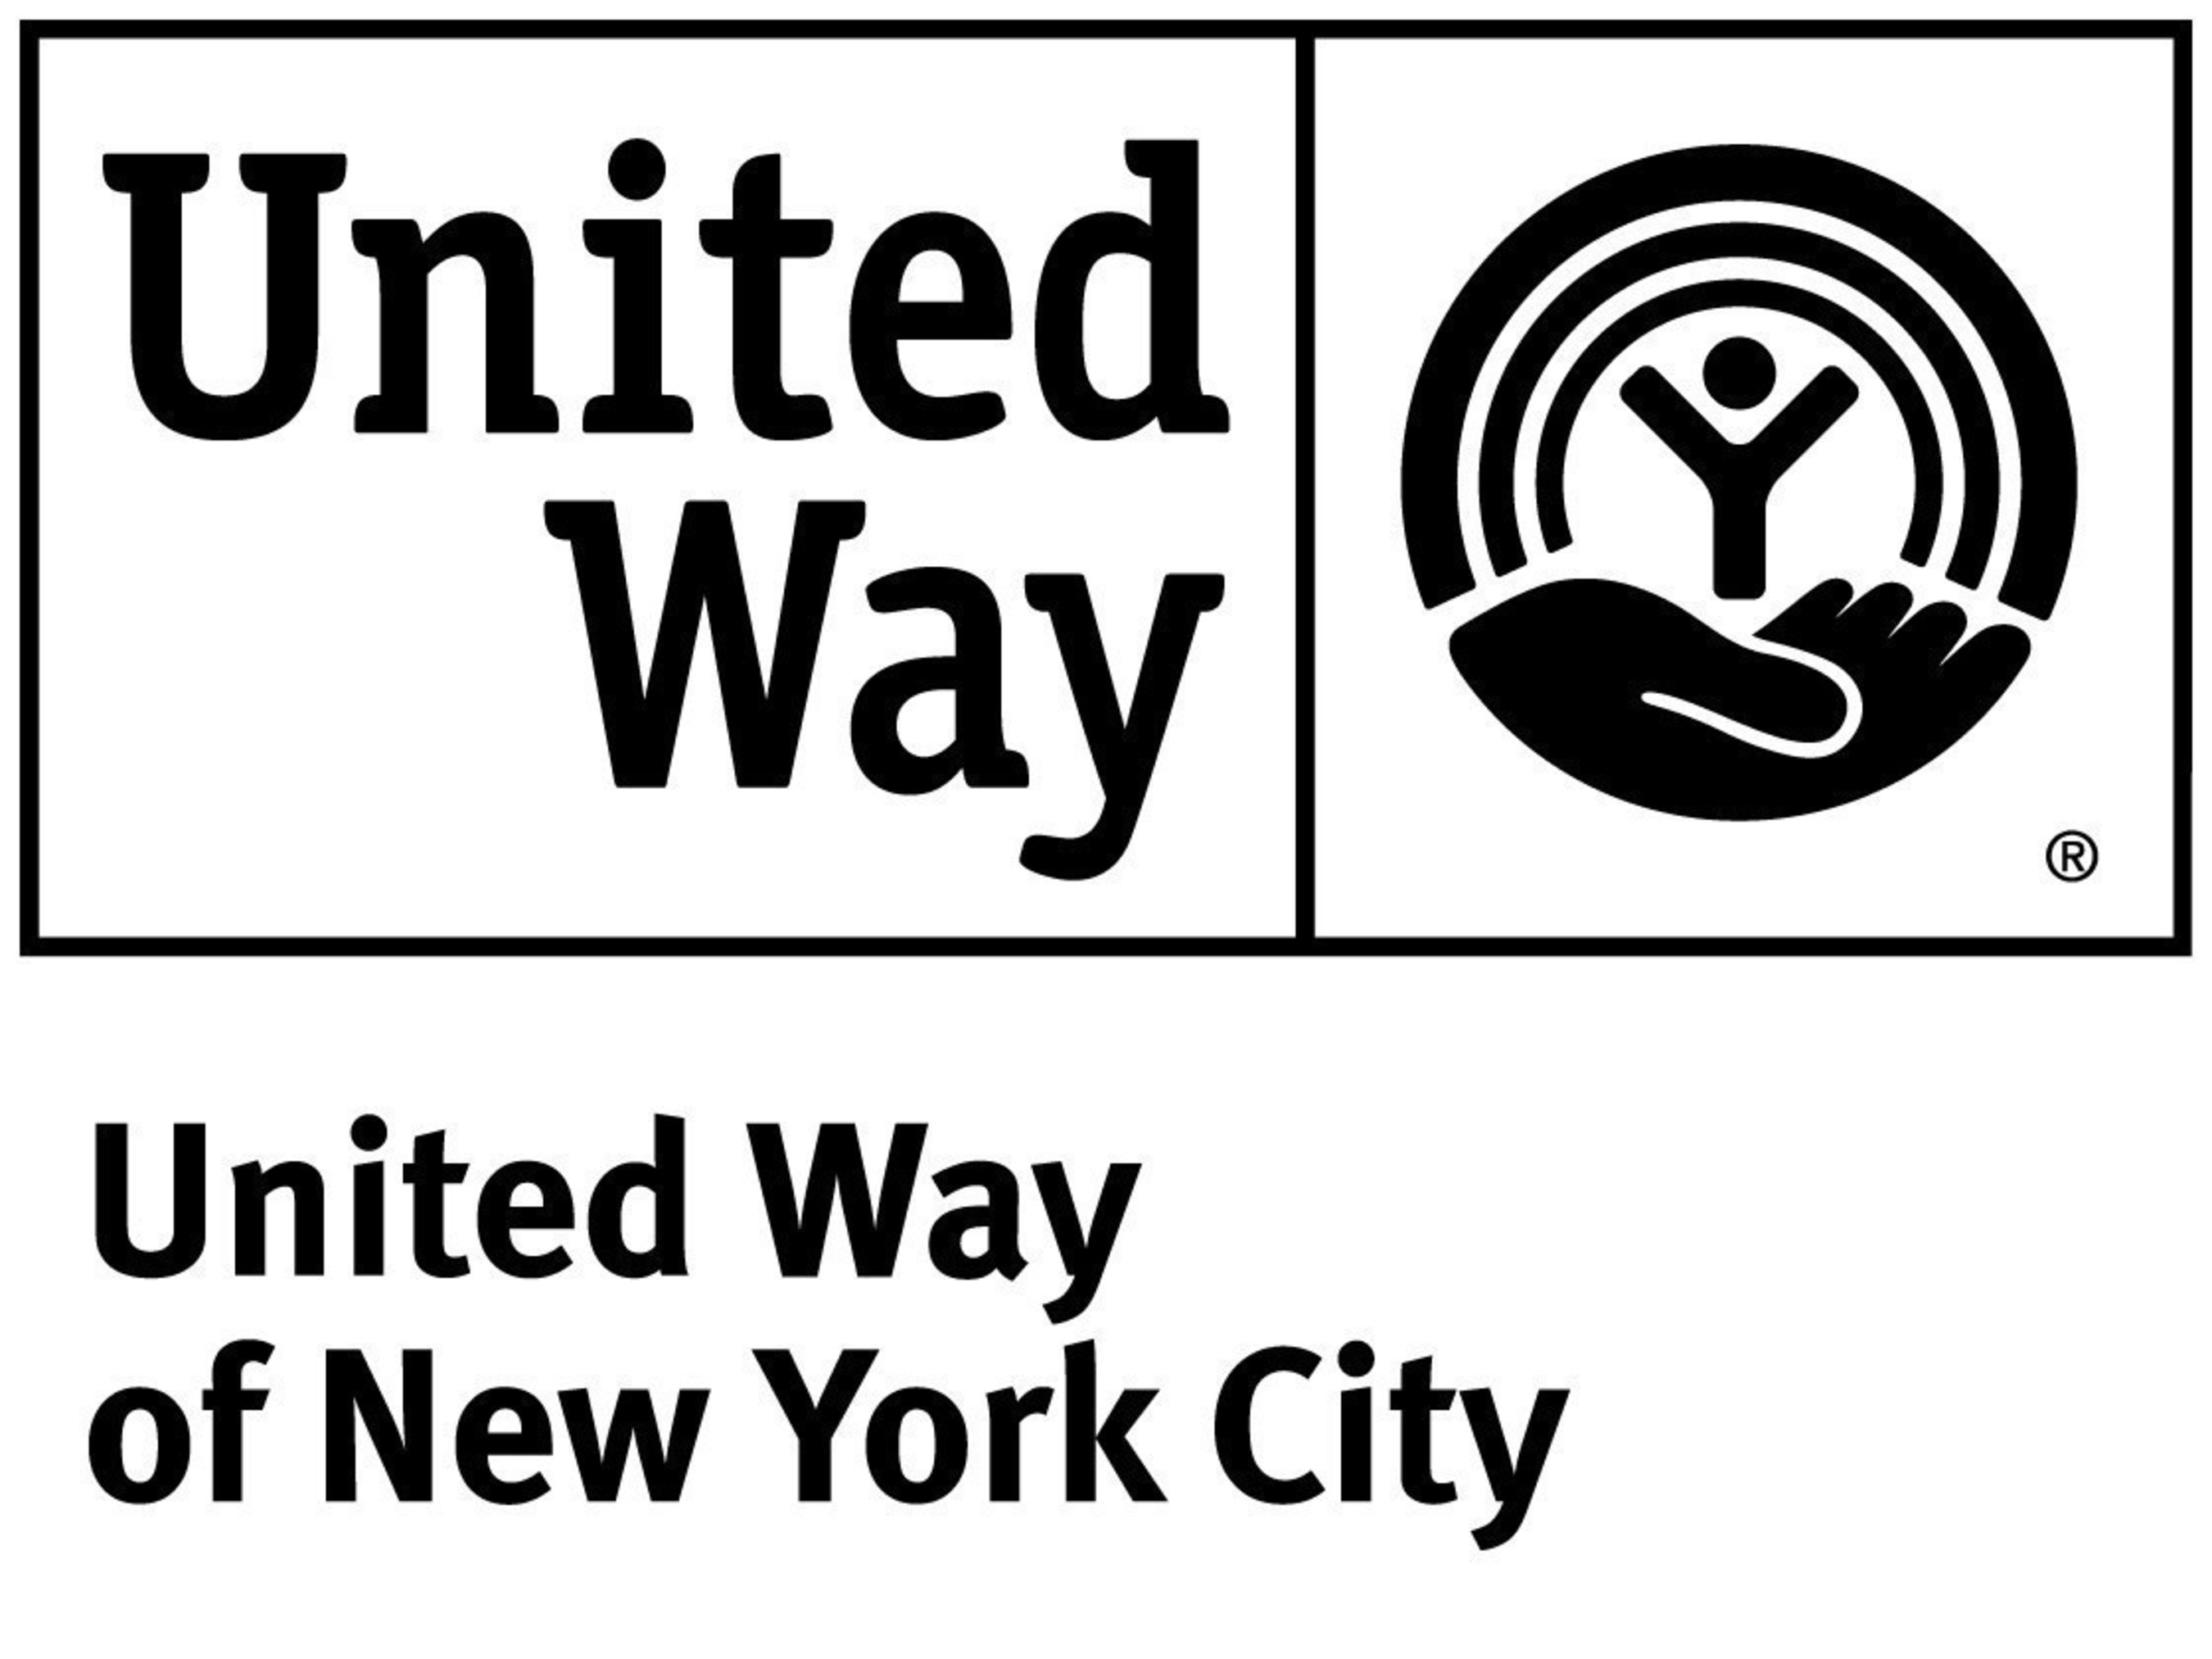 NFL Players and Staff, United Way of NYC CEO Sheena Wright, NYC